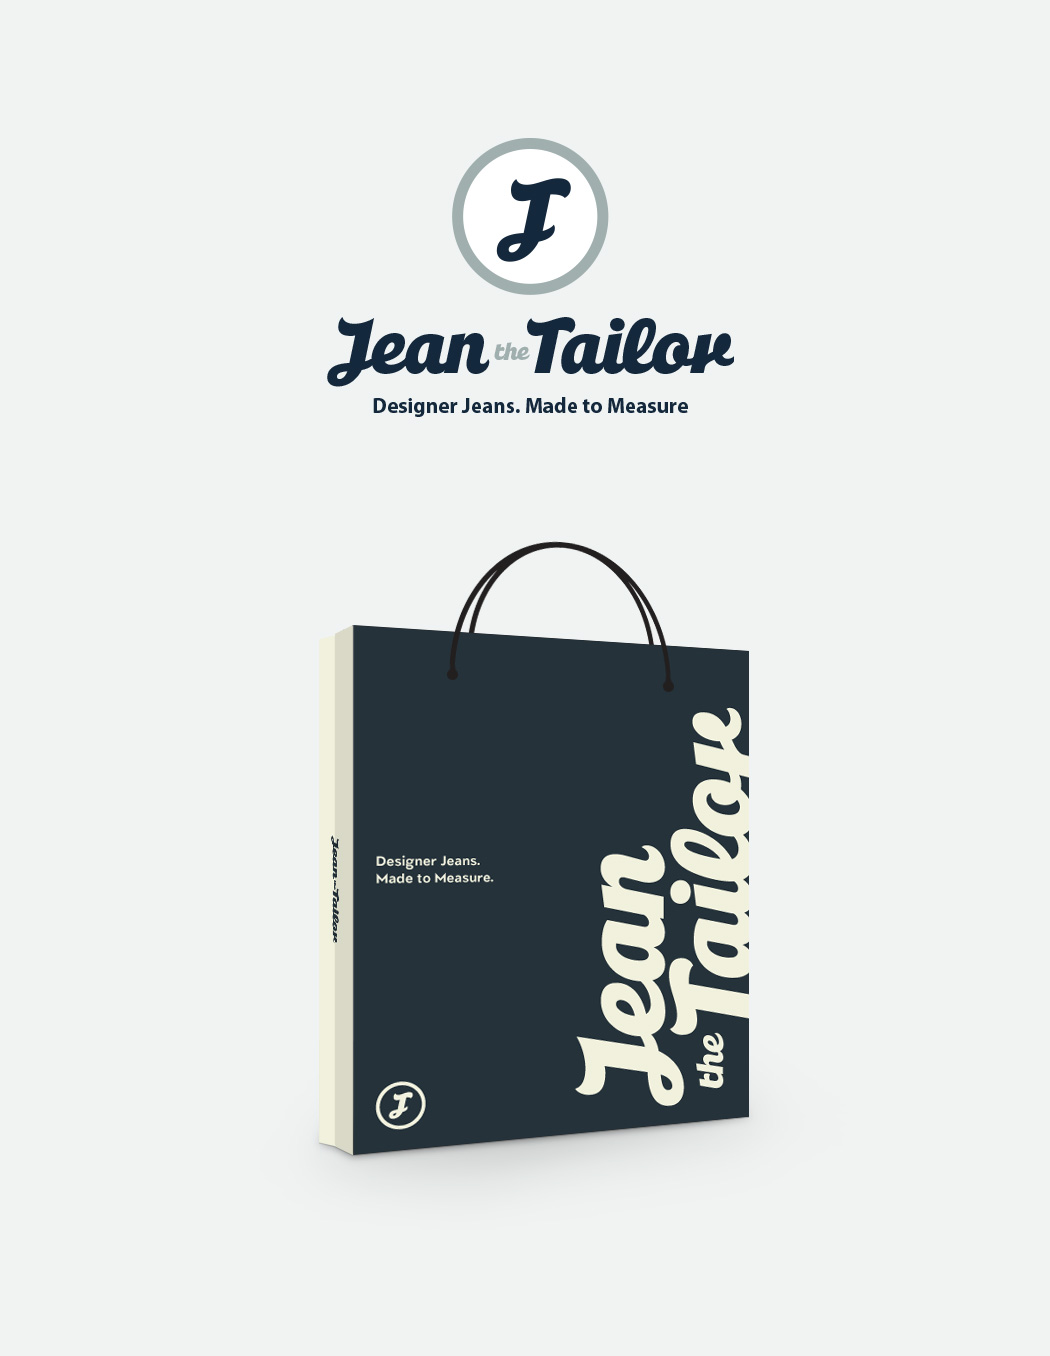 Jean the Tailor Corporate Identity Design